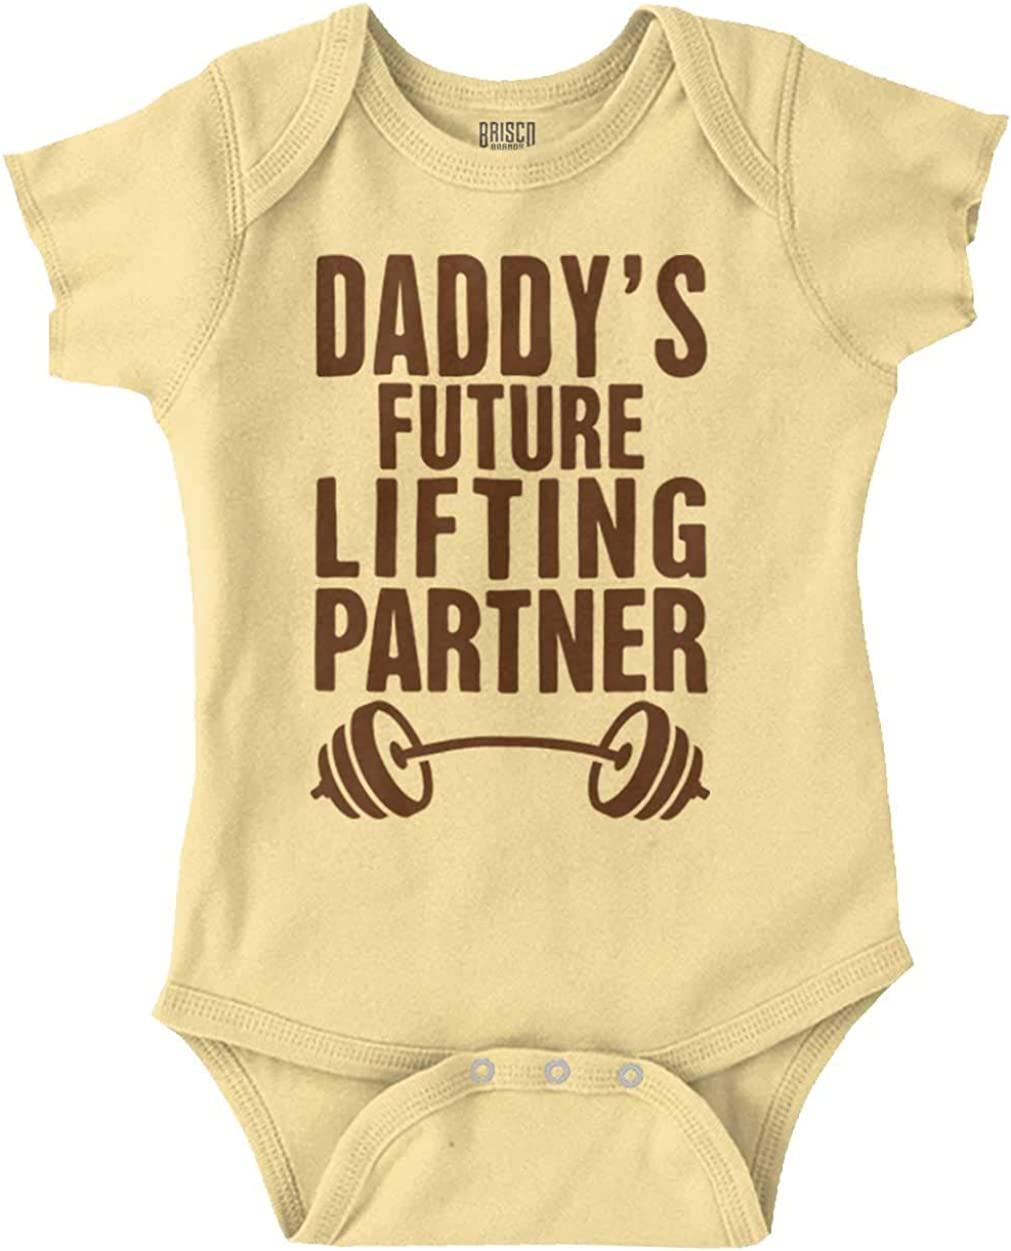 Brisco Brands Daddys Future Lifting Partner Athletic Baby Baby Romper Bodysuits